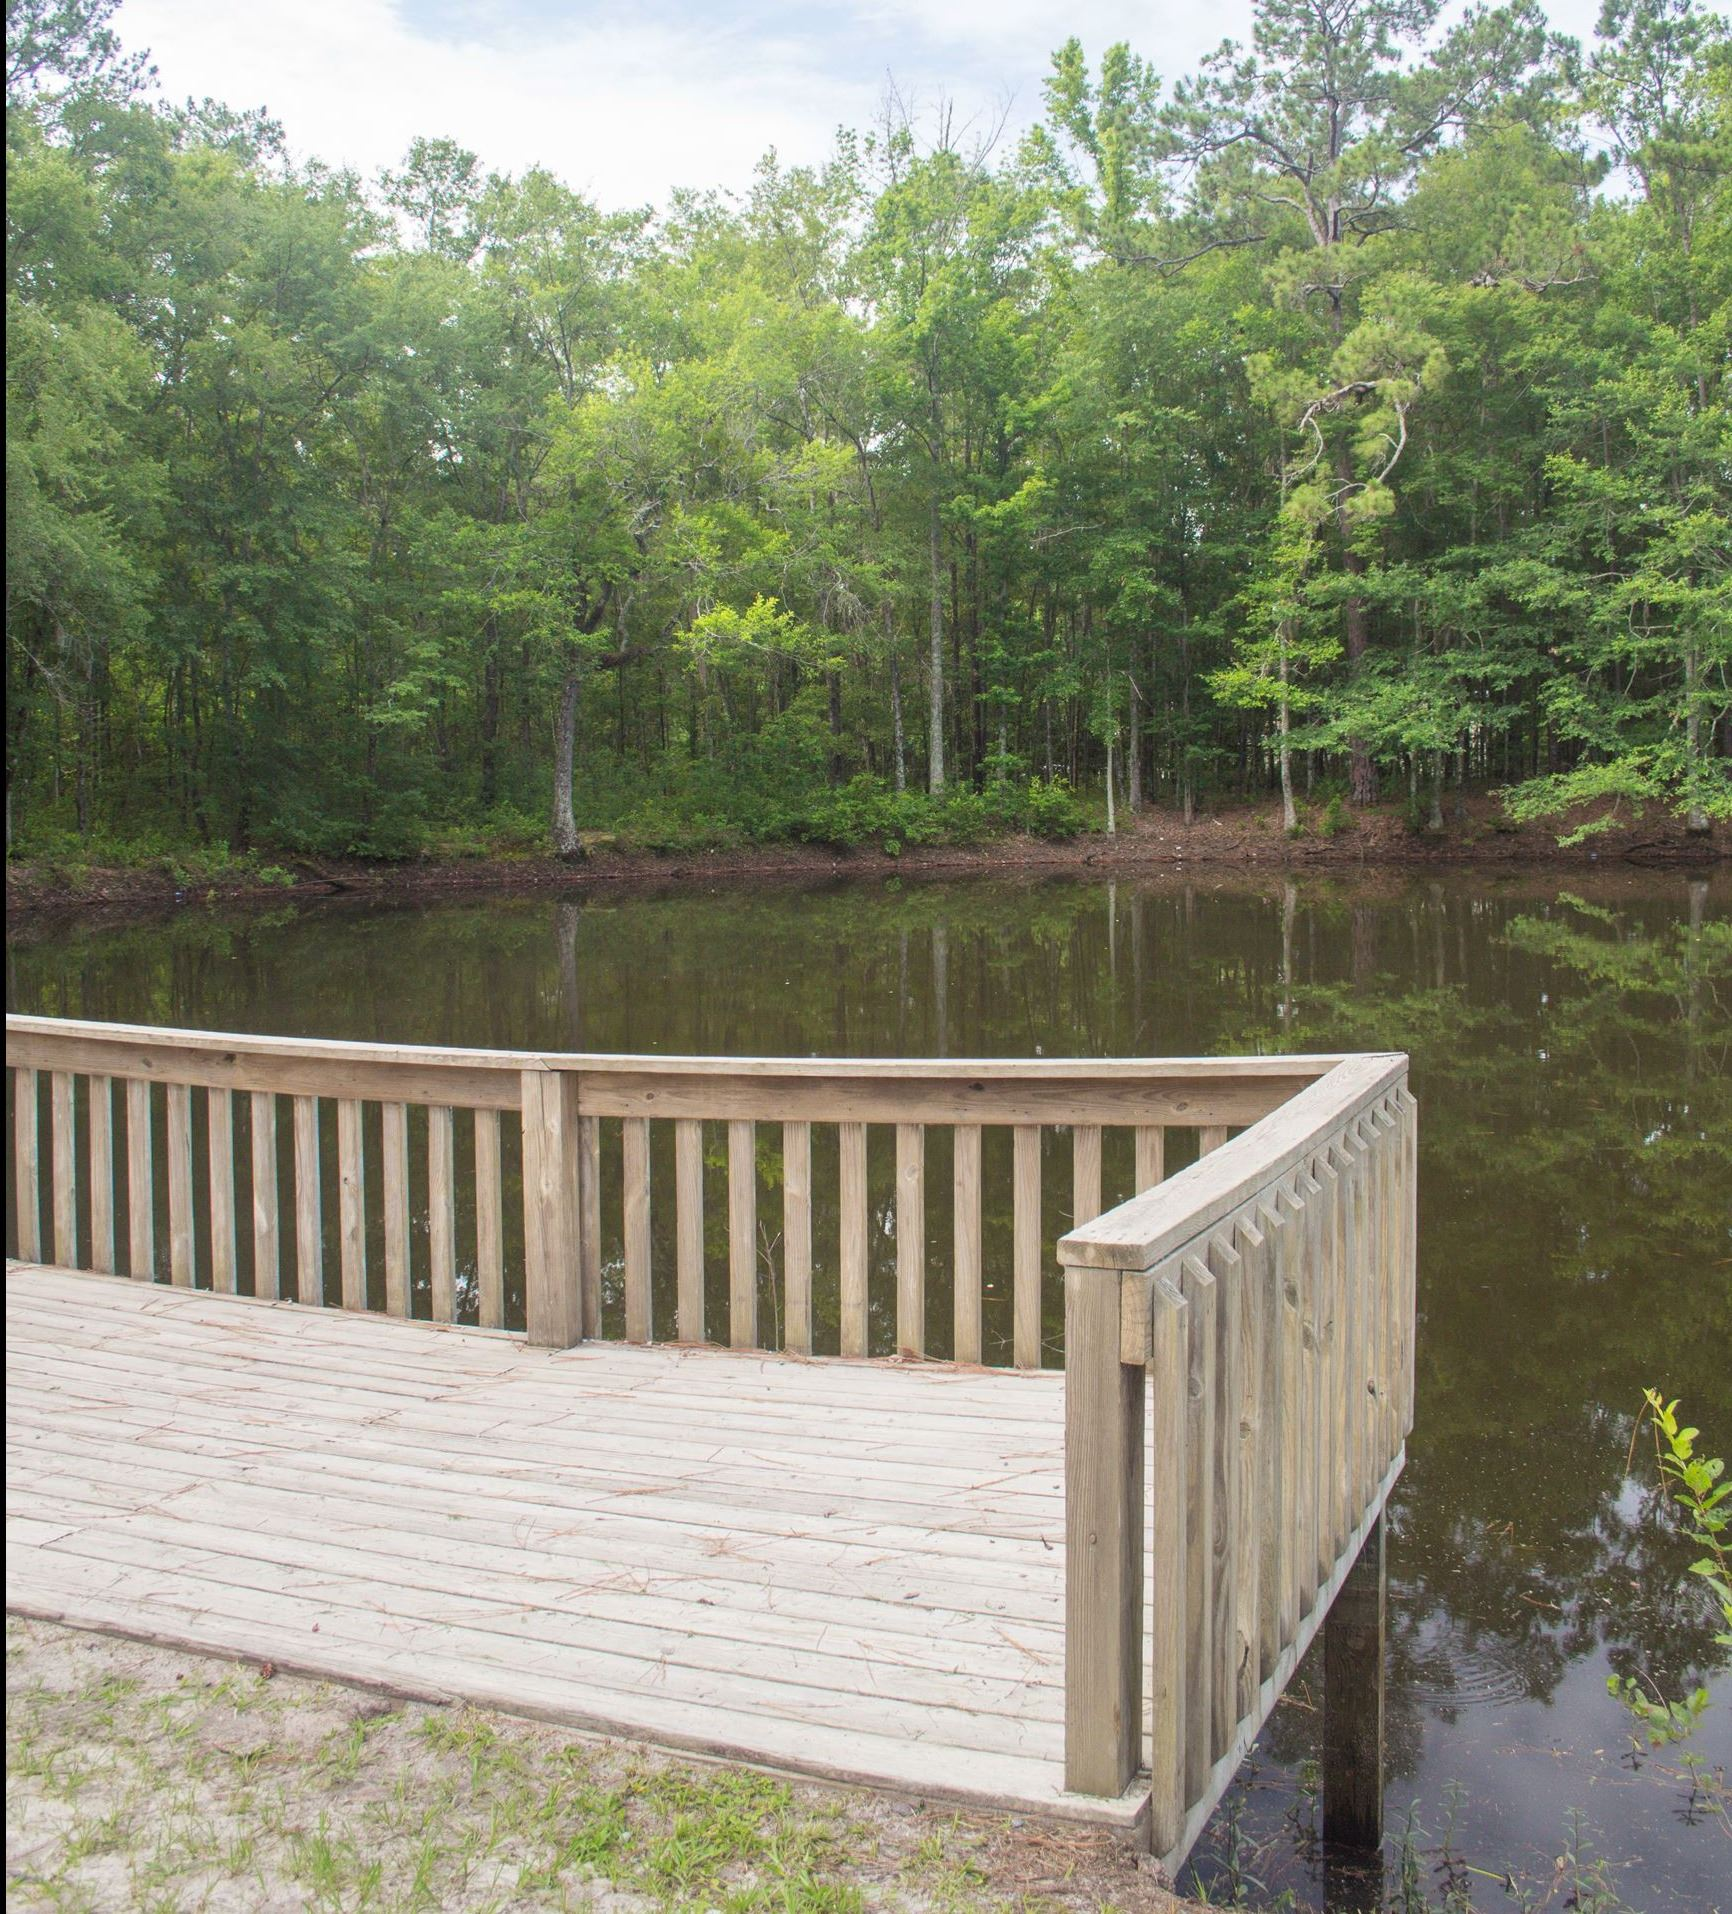 An image of a wooden dock looking over a small pond.